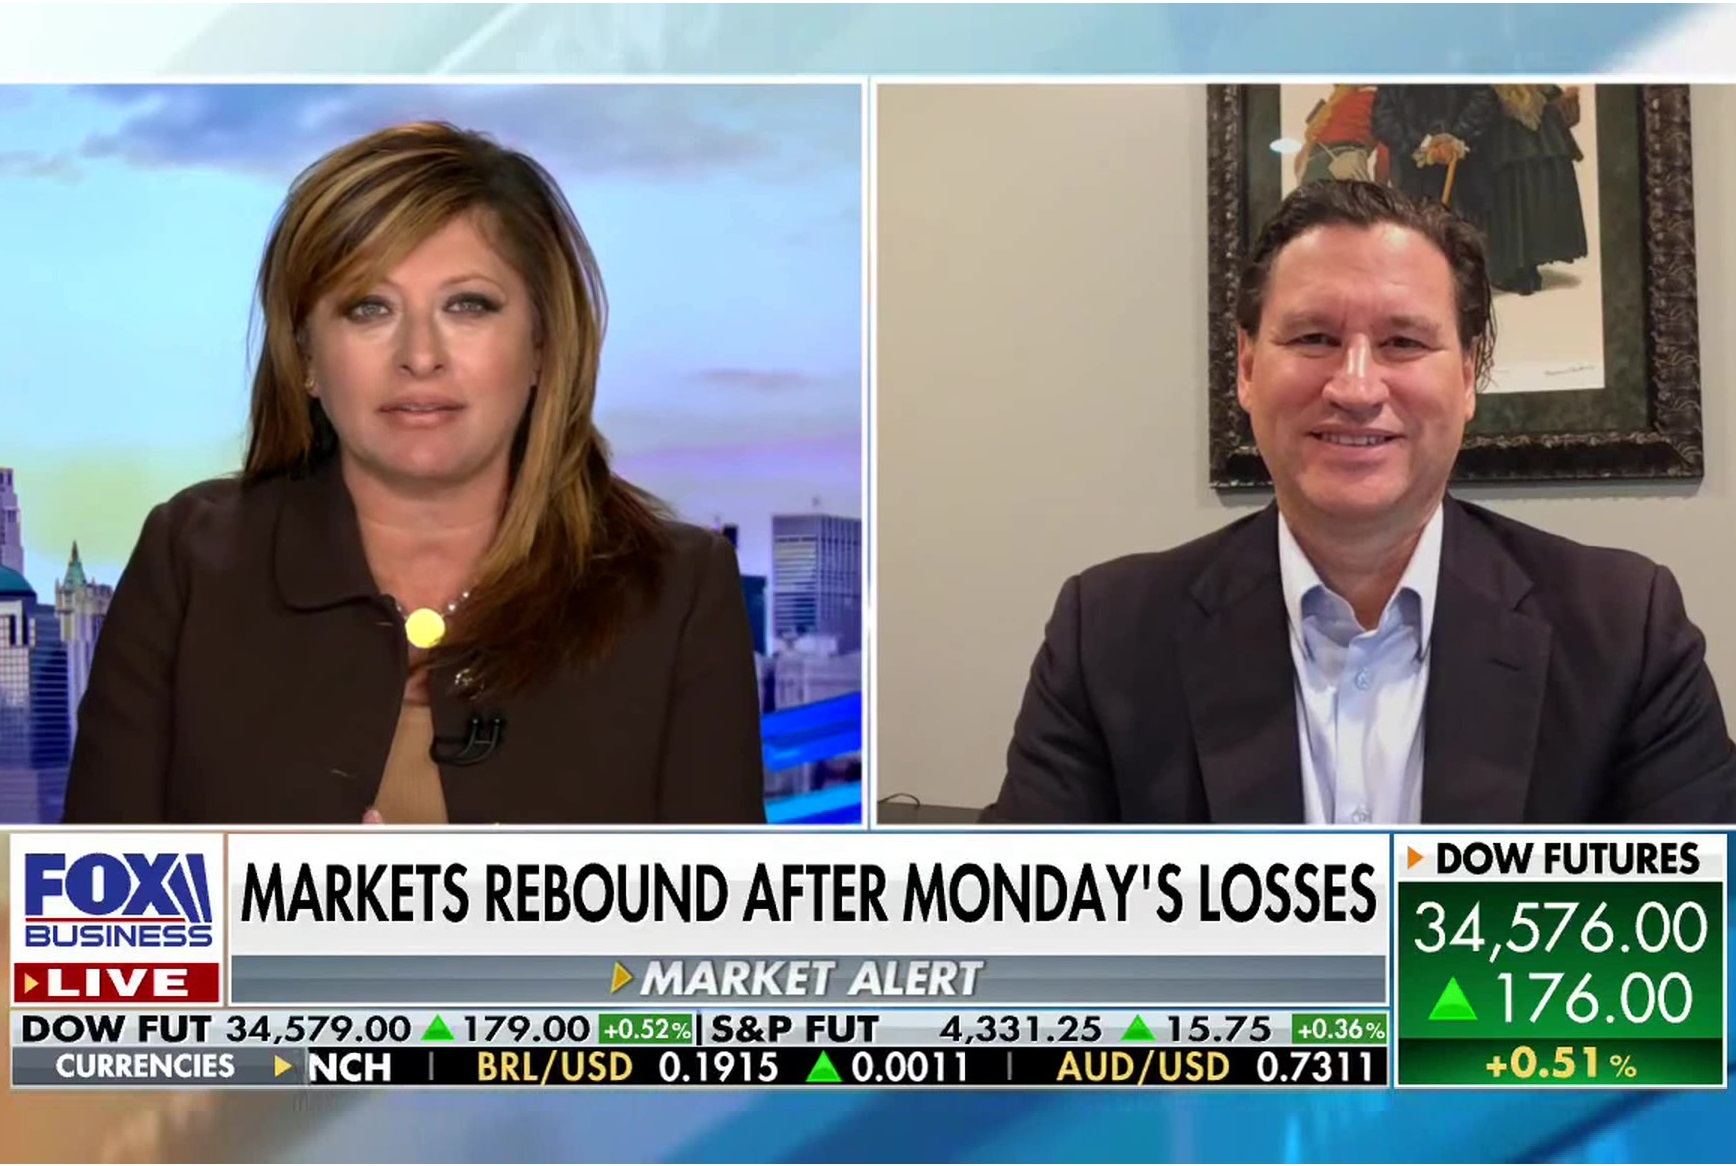 Markets Rebound After Monday's Losses